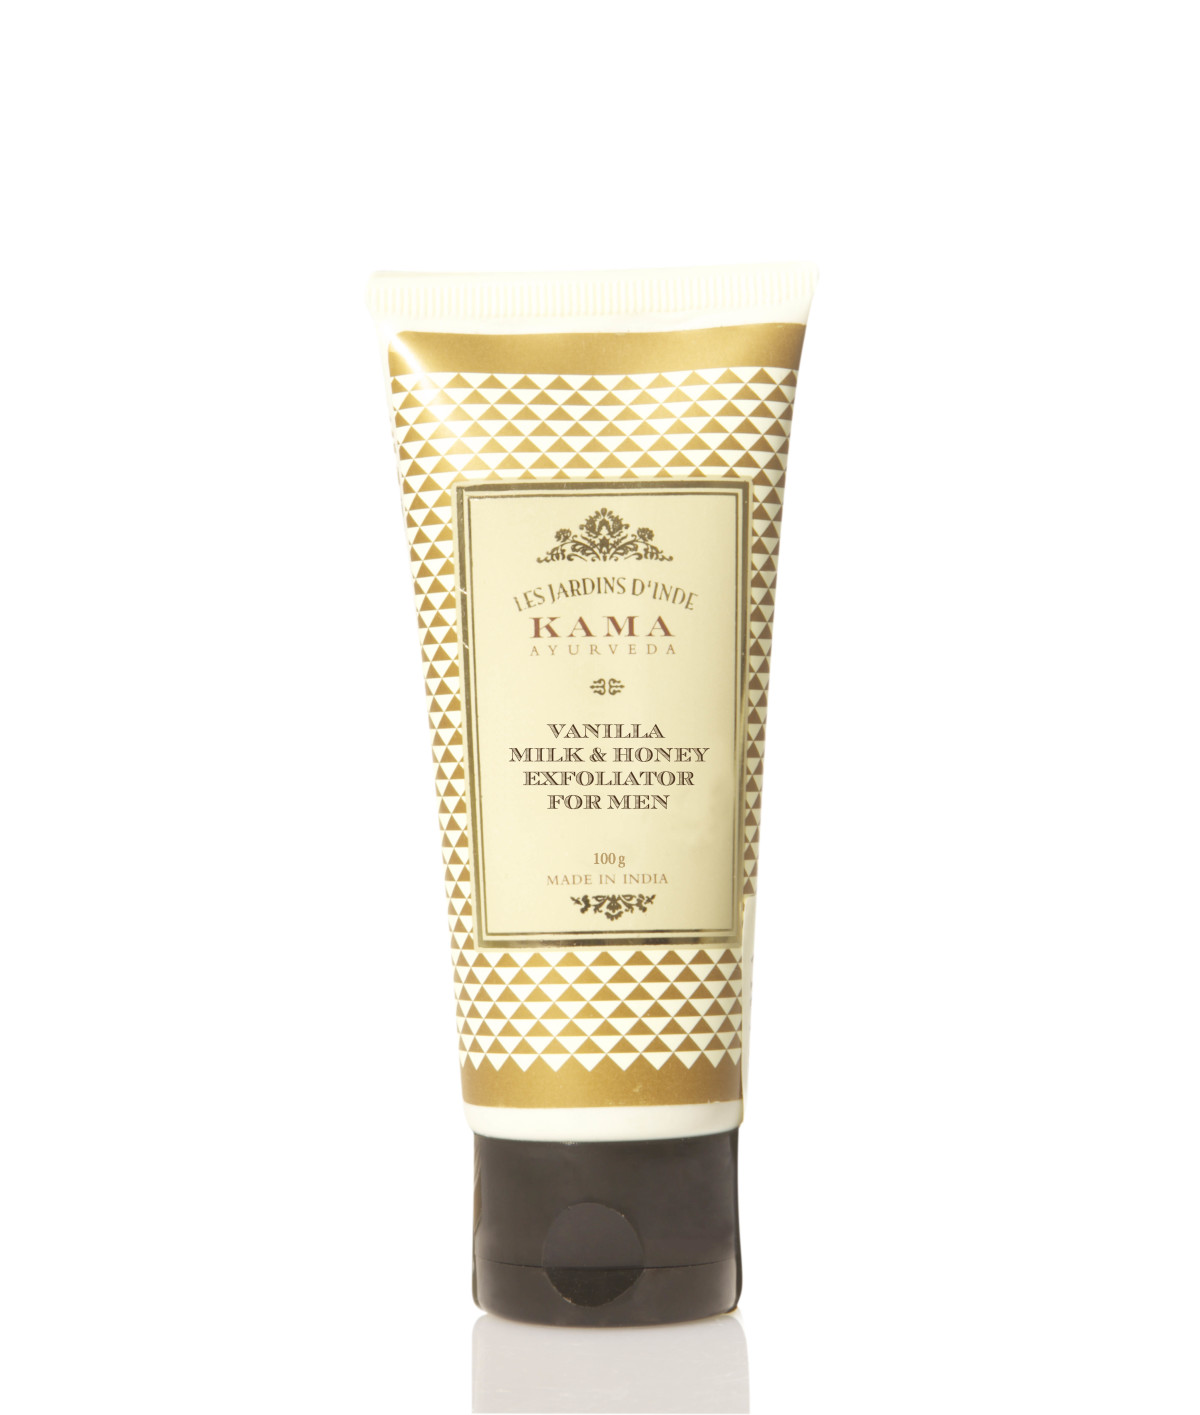 Vanilla, Milk & Honey Body Exfoliator for Men